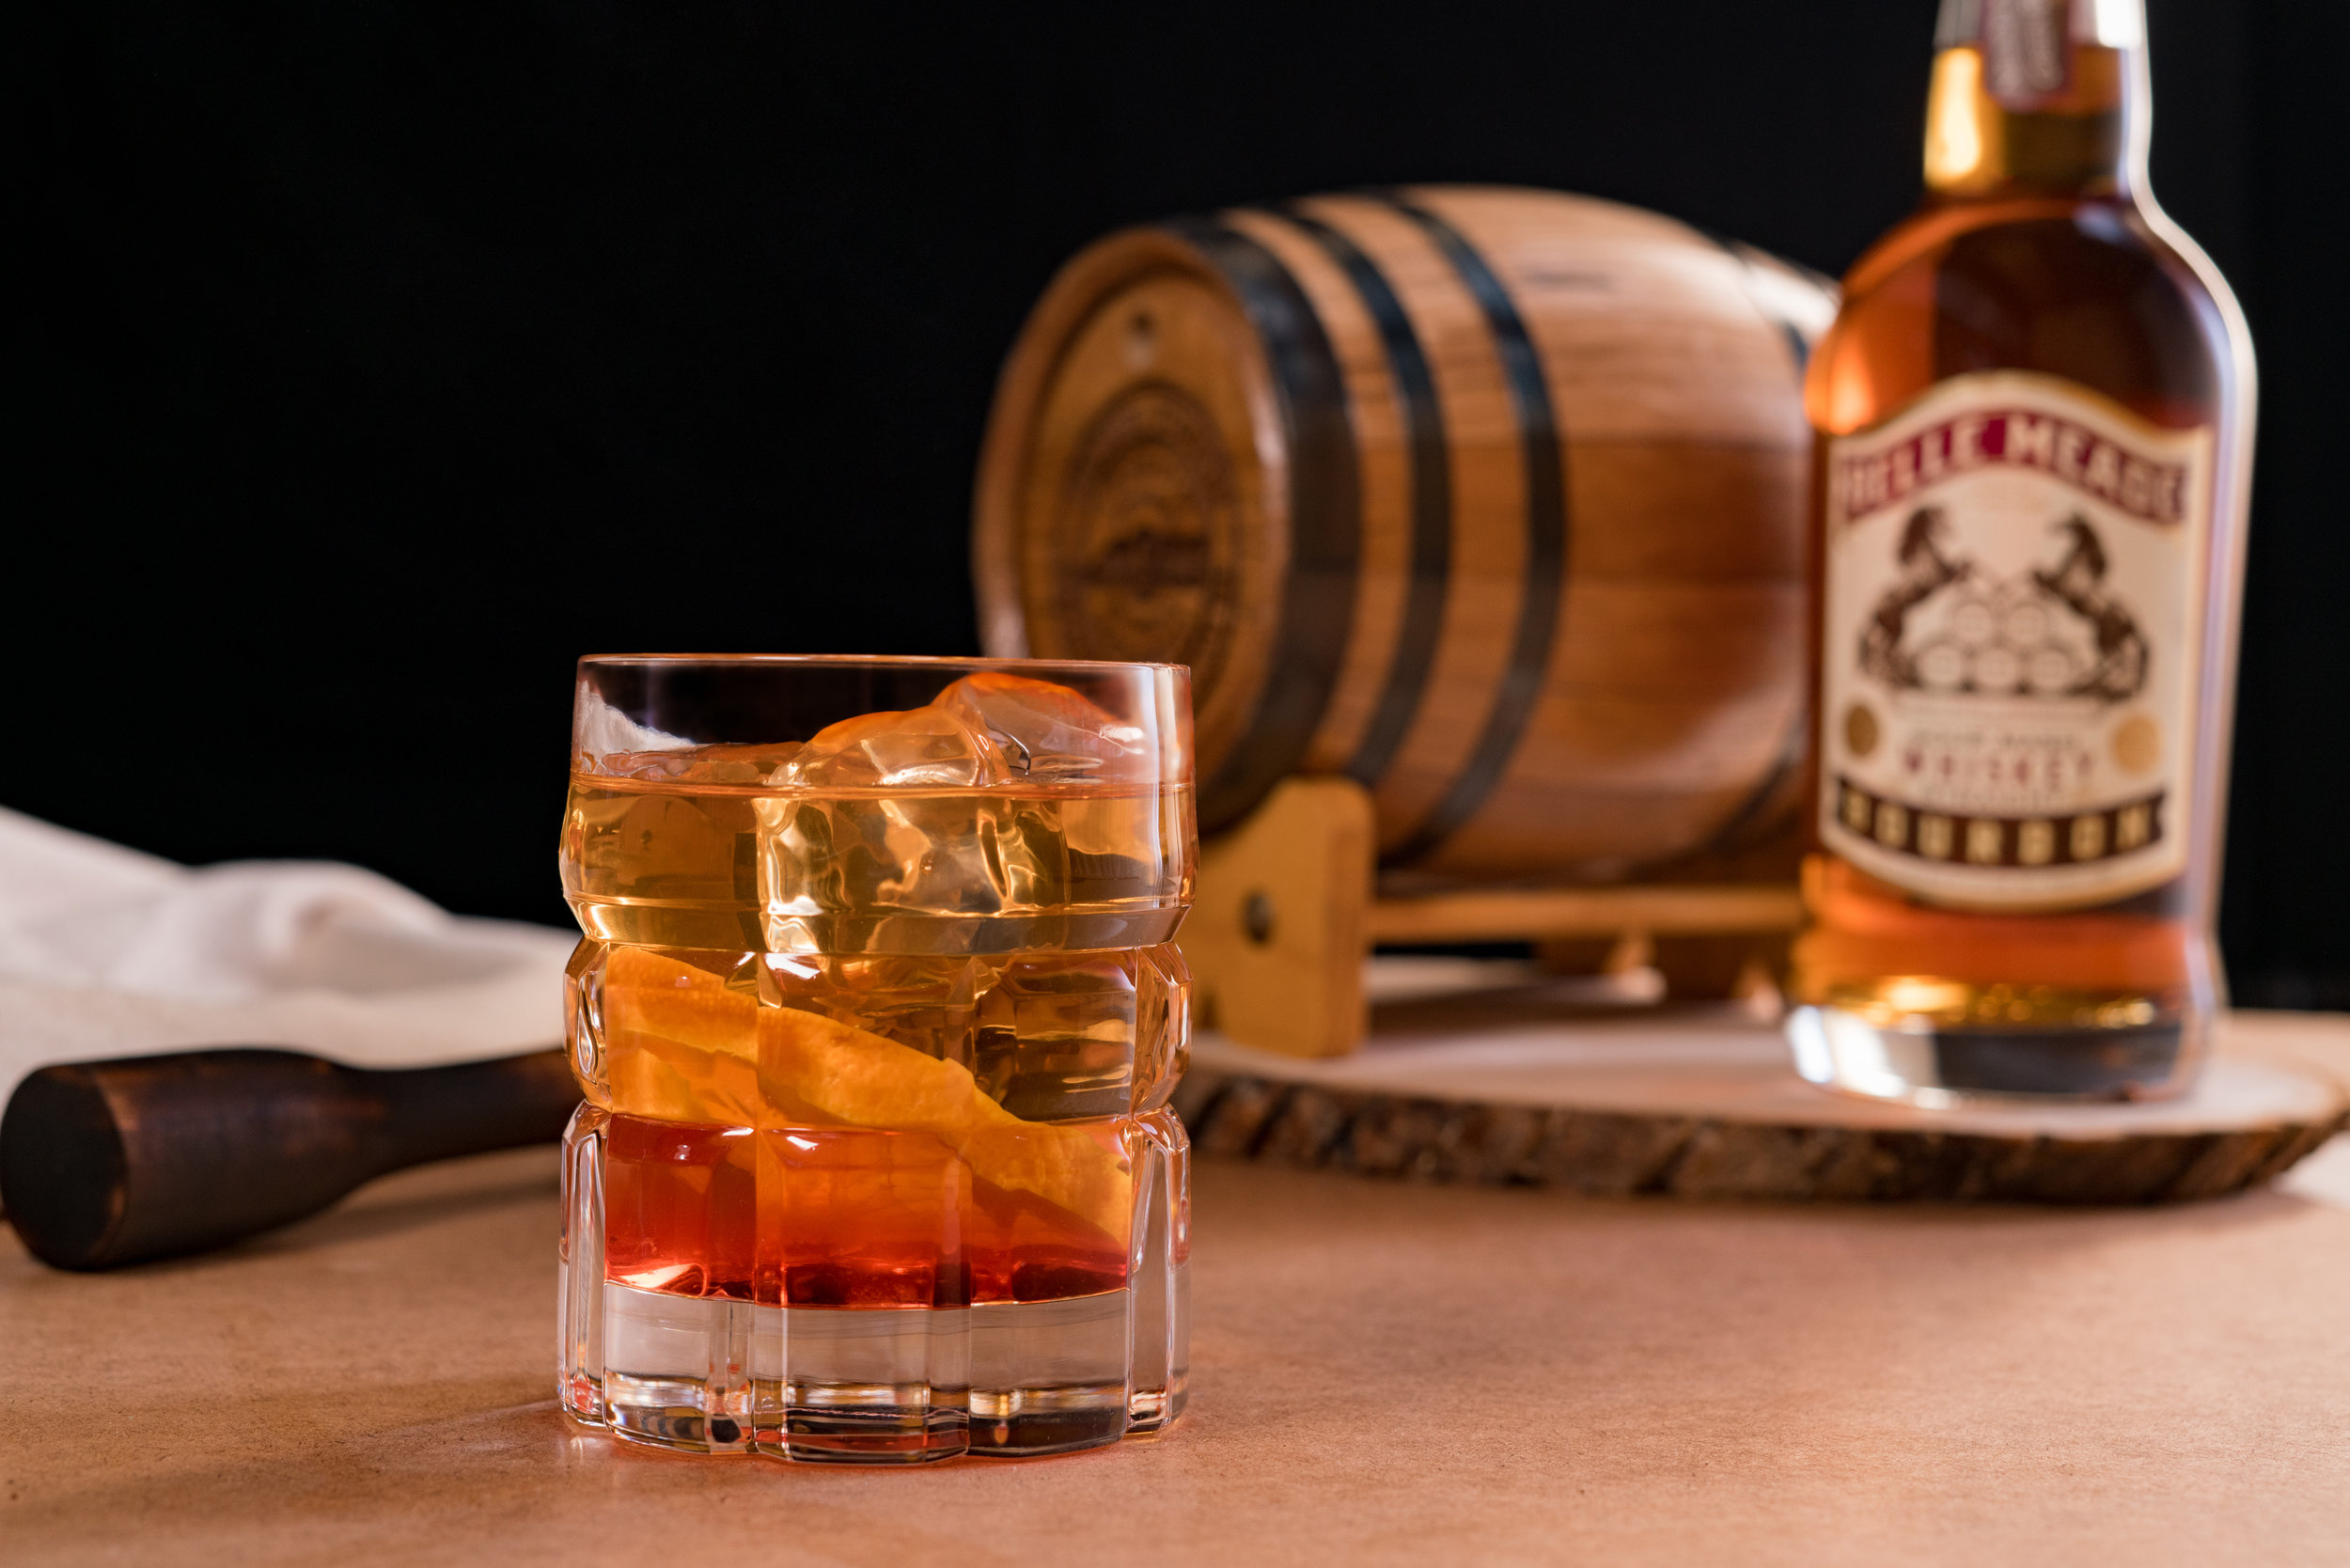 The Bollinger Old Fashioned